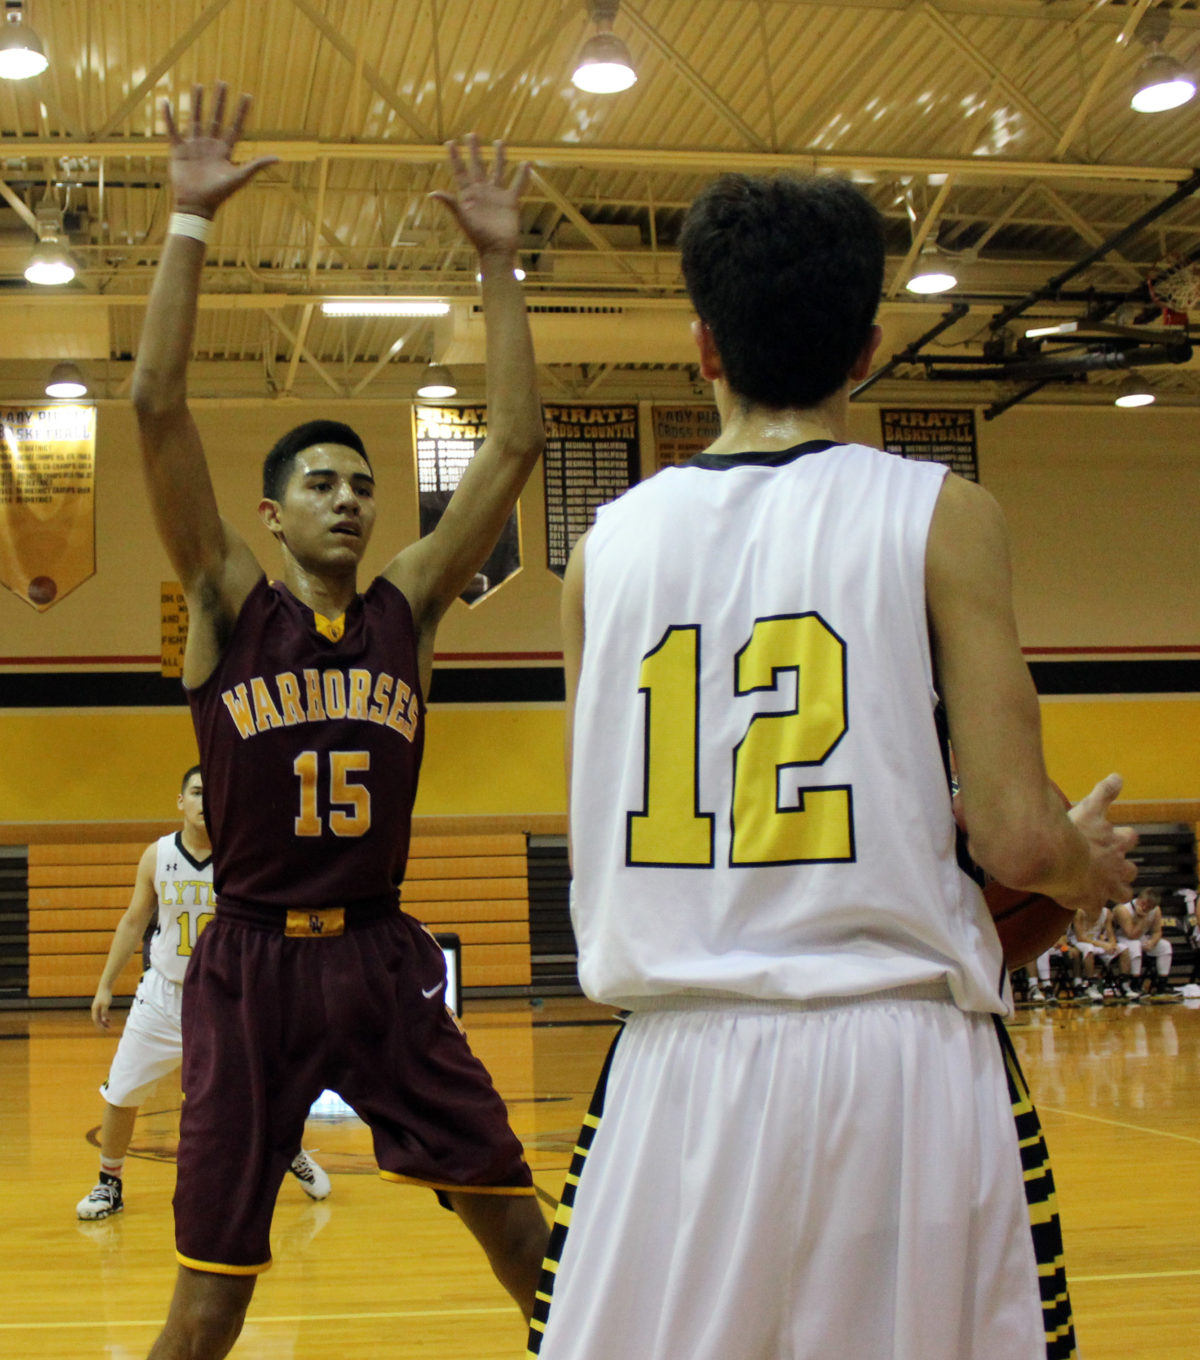 Warhorses win 2OT thriller in Carrizo Springs